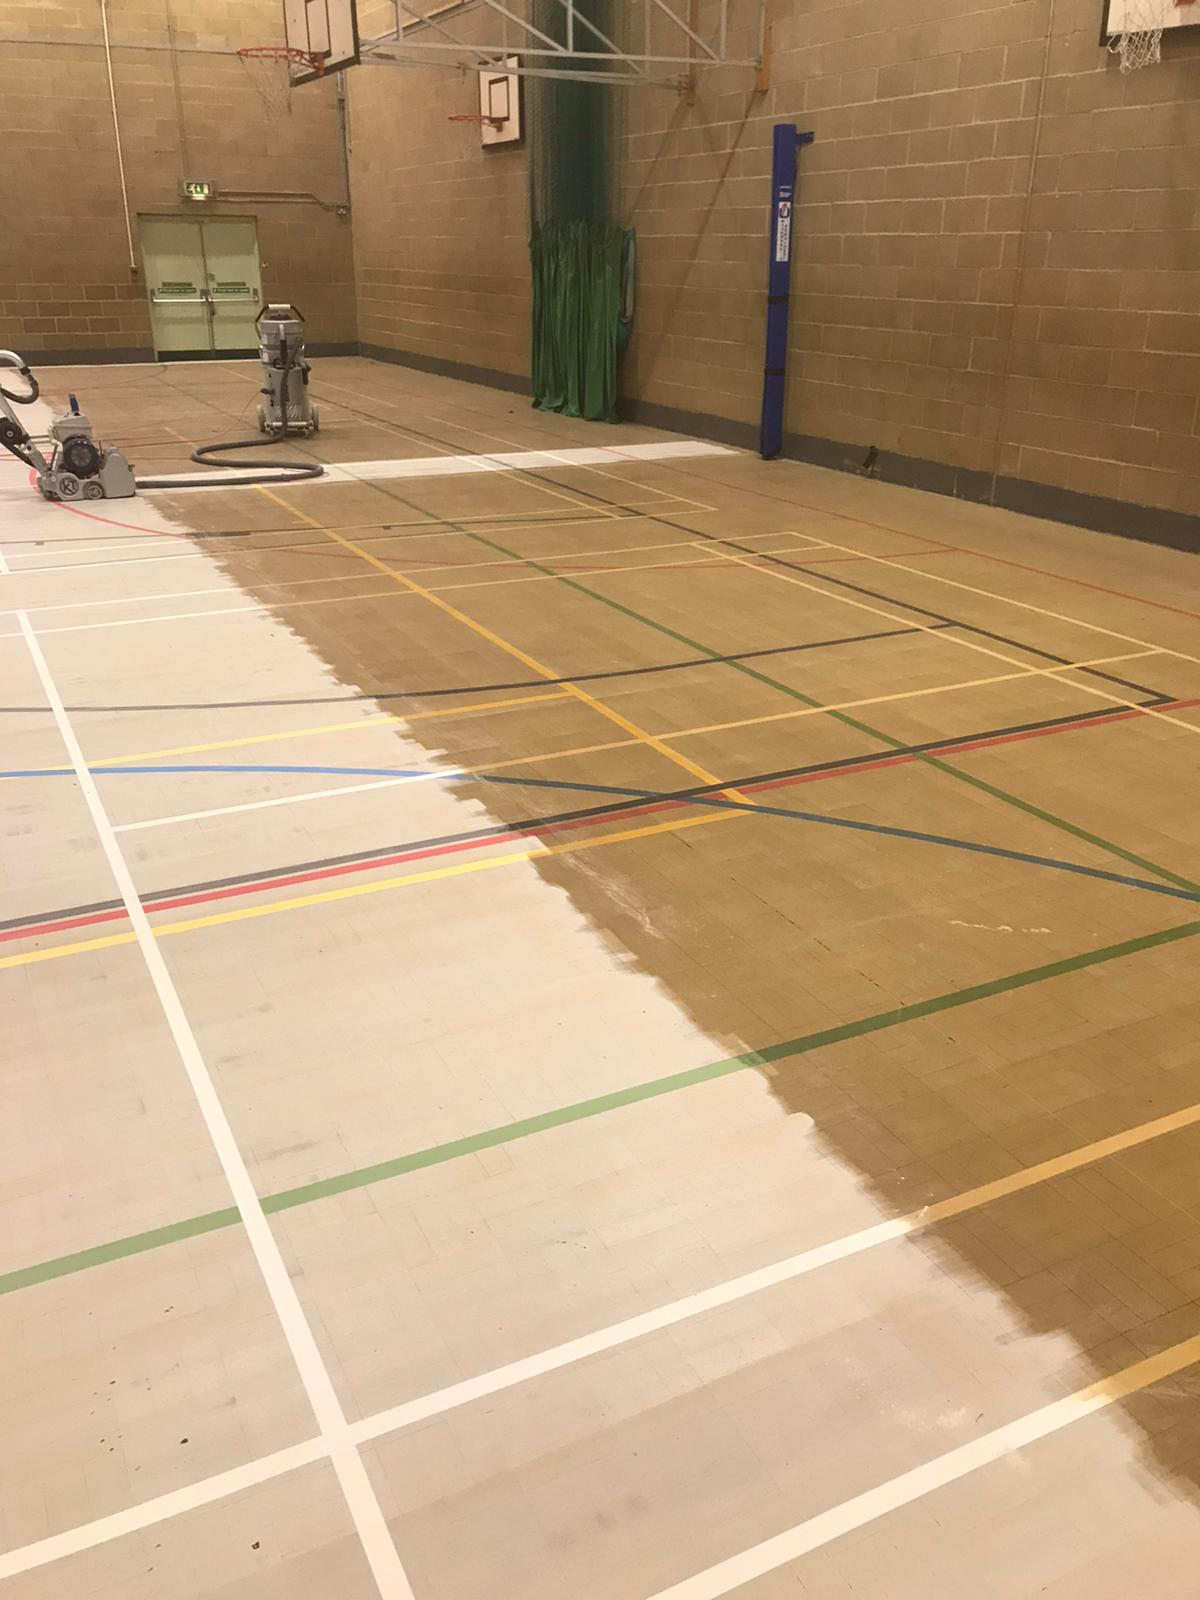 Tiffin School sand and seal plus line marking 12 new courts complete!